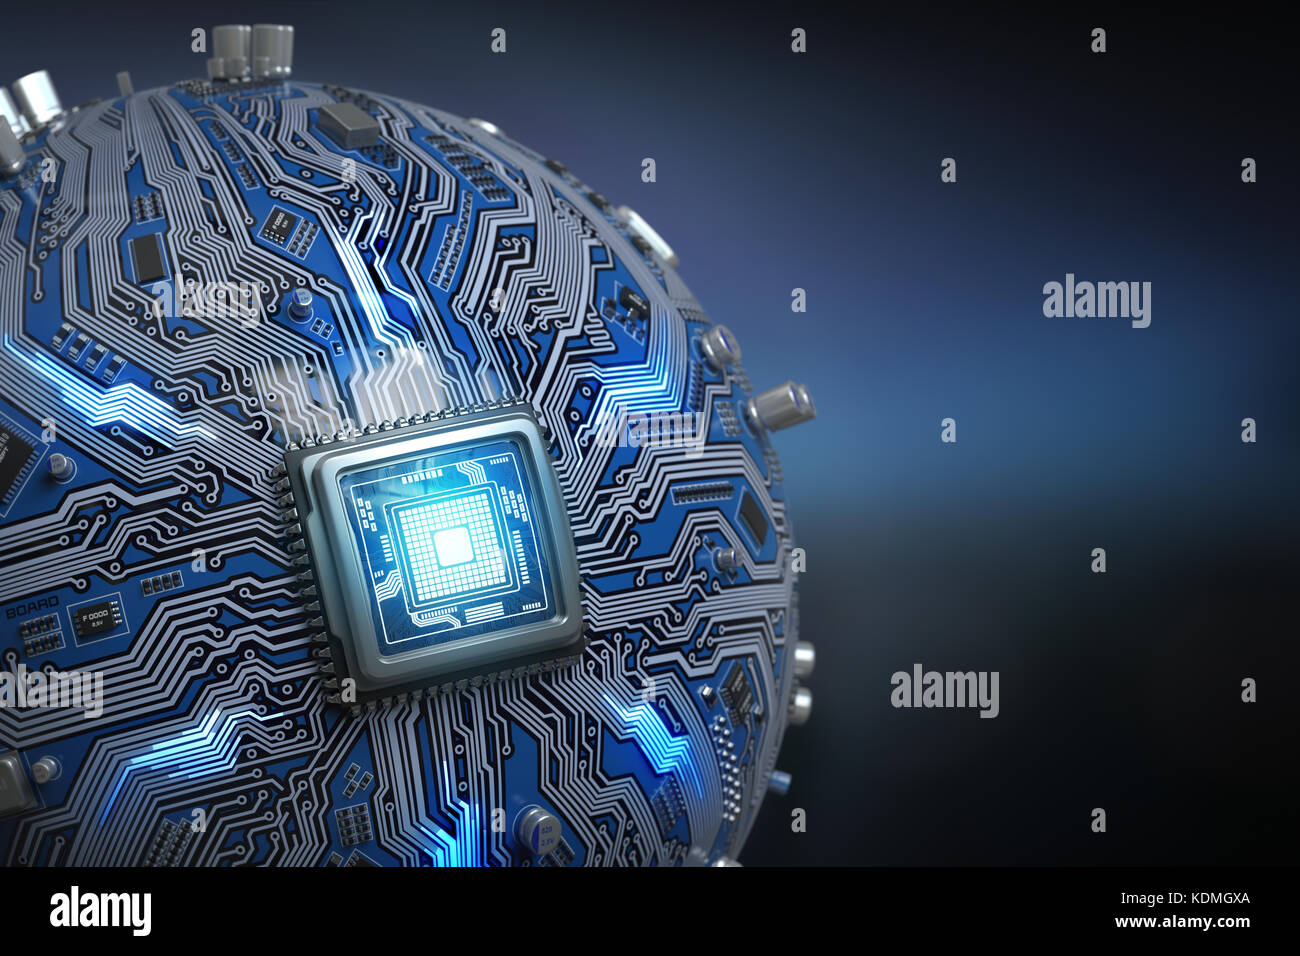 Download Hd 3d Live Wallpaper For Pc Circuit Board System Chip With Core Processor Spherical